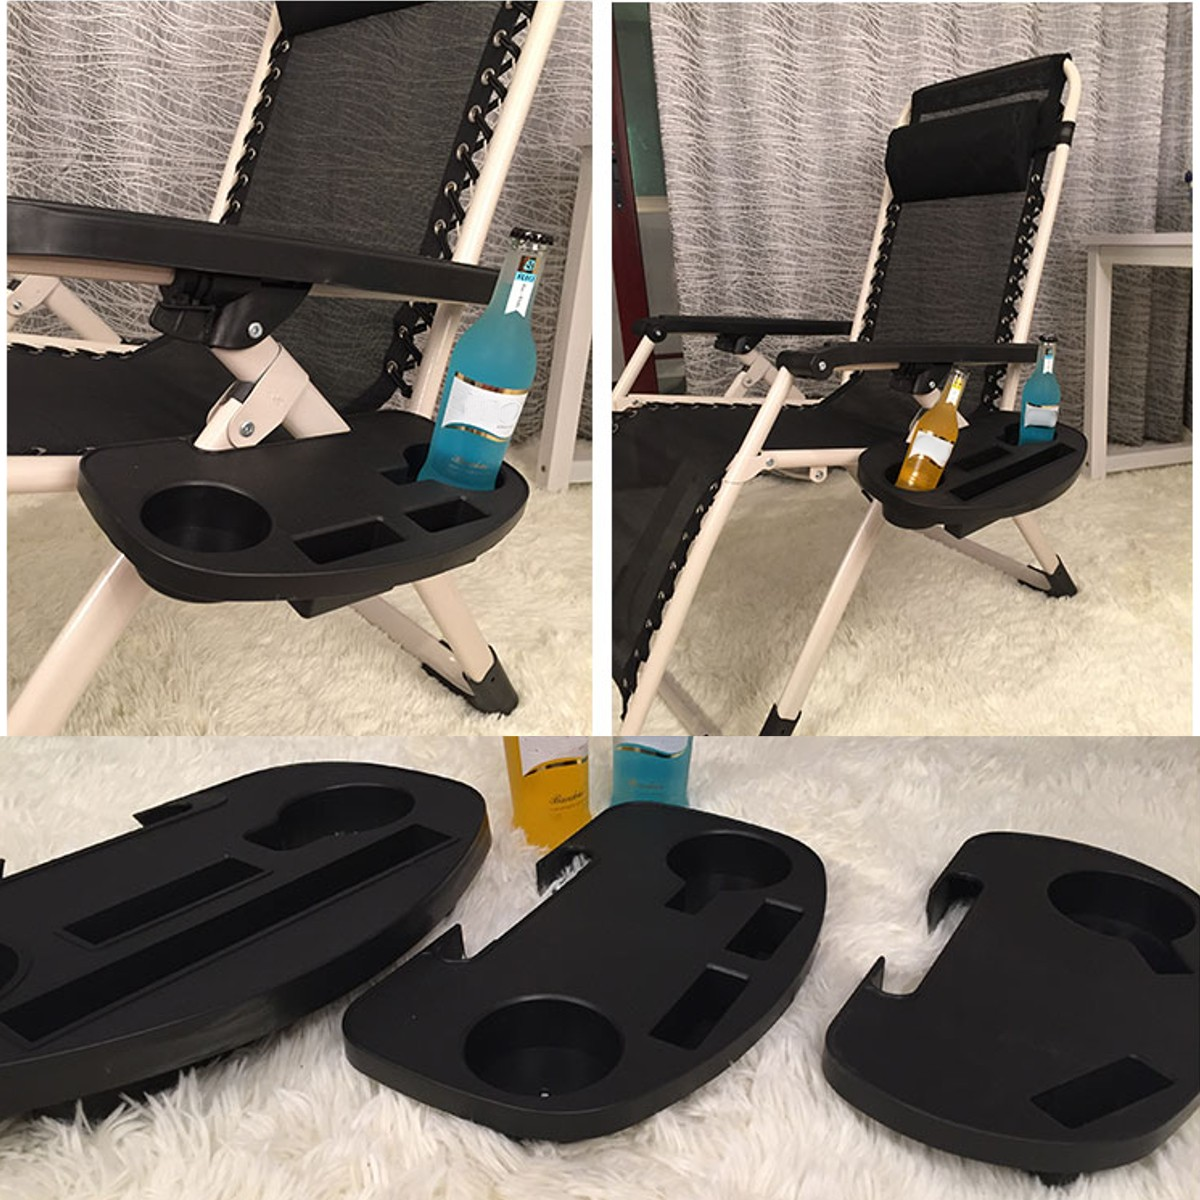 Chair Clip on Tray Chair Table Side Storage Phone Holder Outdoor Camping Fishing